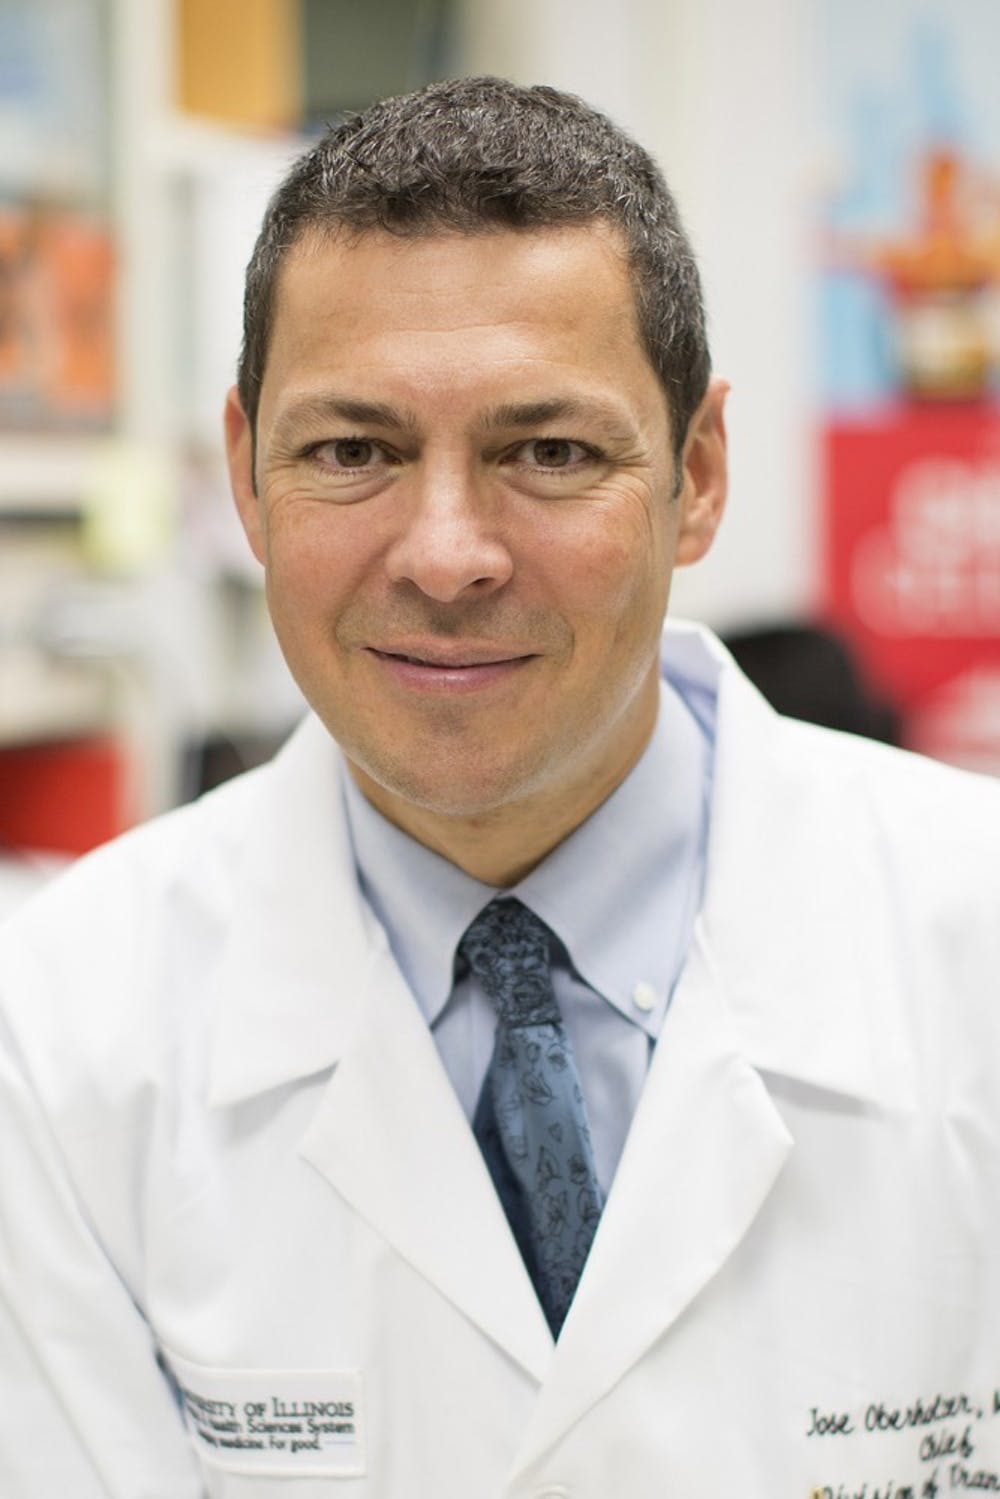 <p>Dr. Oberholzer said he hopes to increase access to transplants while decreasing surgical risks.</p>